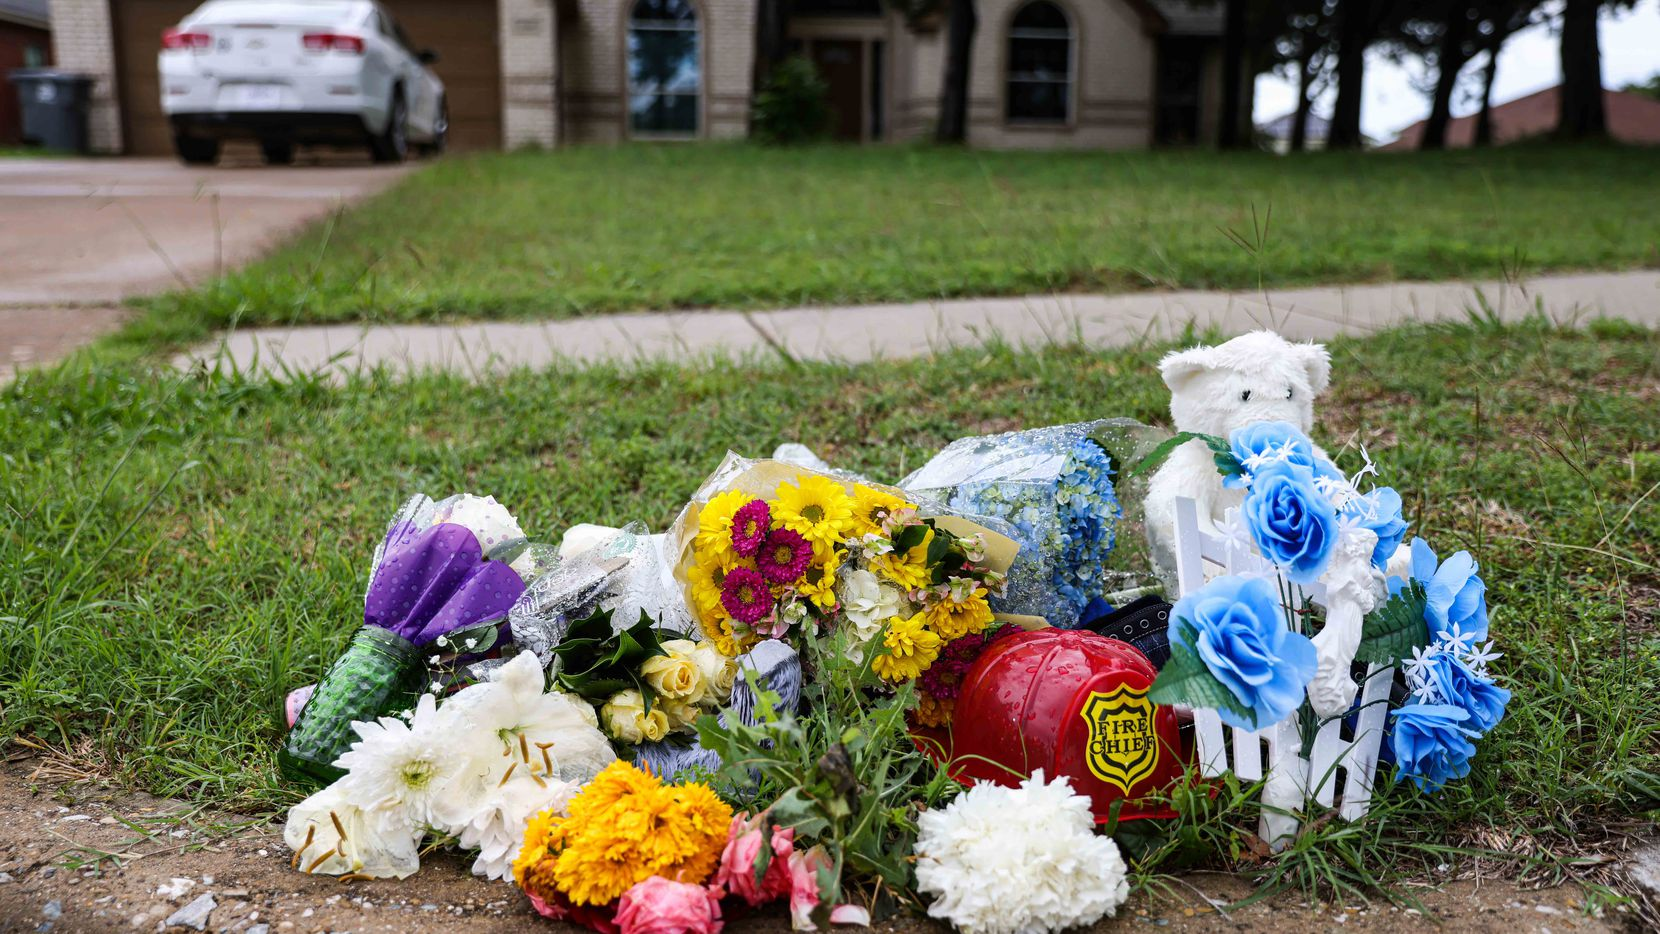 A makeshift memorial on Saddleridge Drive in Dallas on Monday, May 17, 2021, rests on the spot where the dead body of 4-year-old Cash Gernon was found last Saturday morning. (Lola Gomez/The Dallas Morning News)